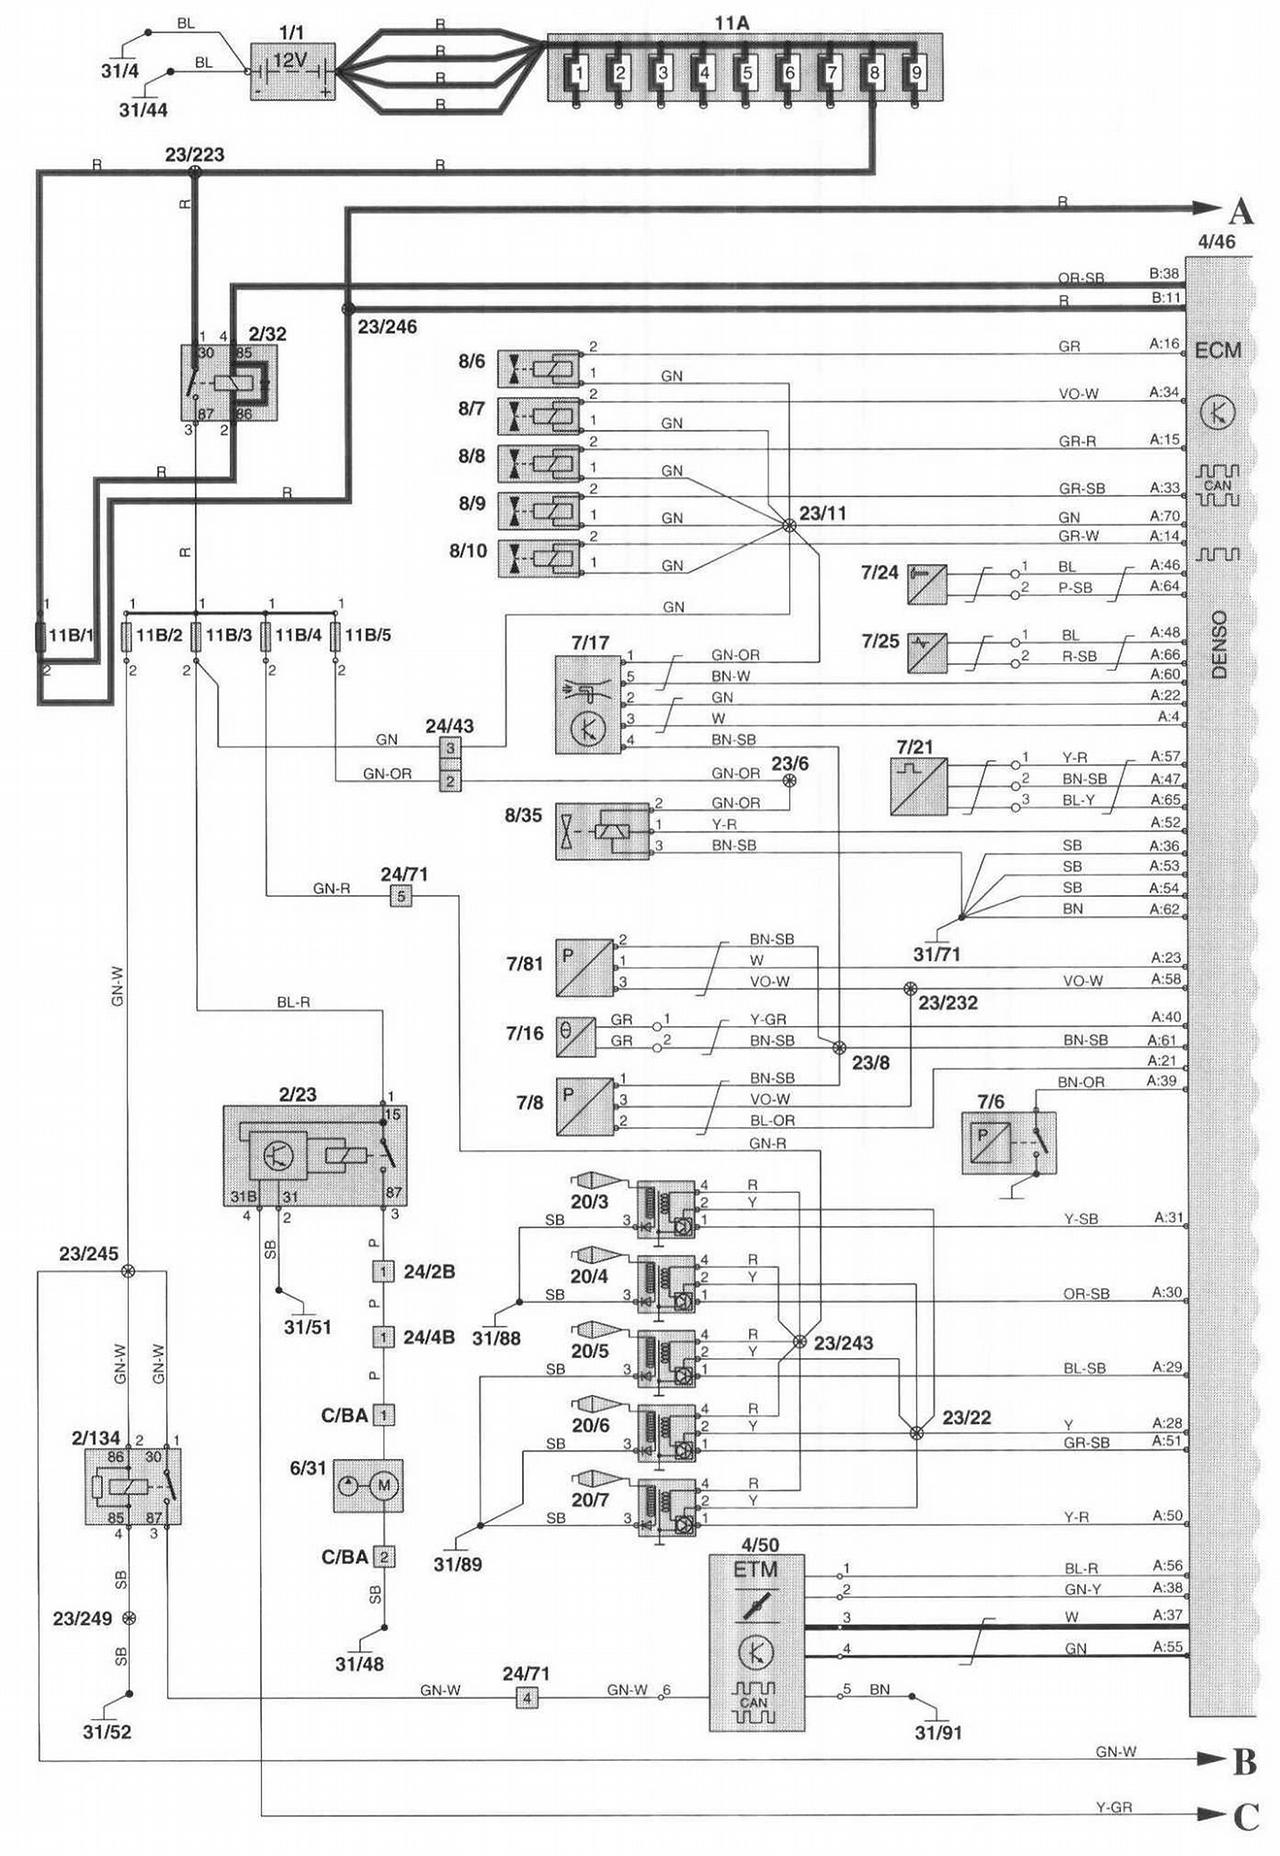 Pleasing Volvo Wire Diagram Wiring Diagram Database Wiring Cloud Ostrrenstrafr09Org